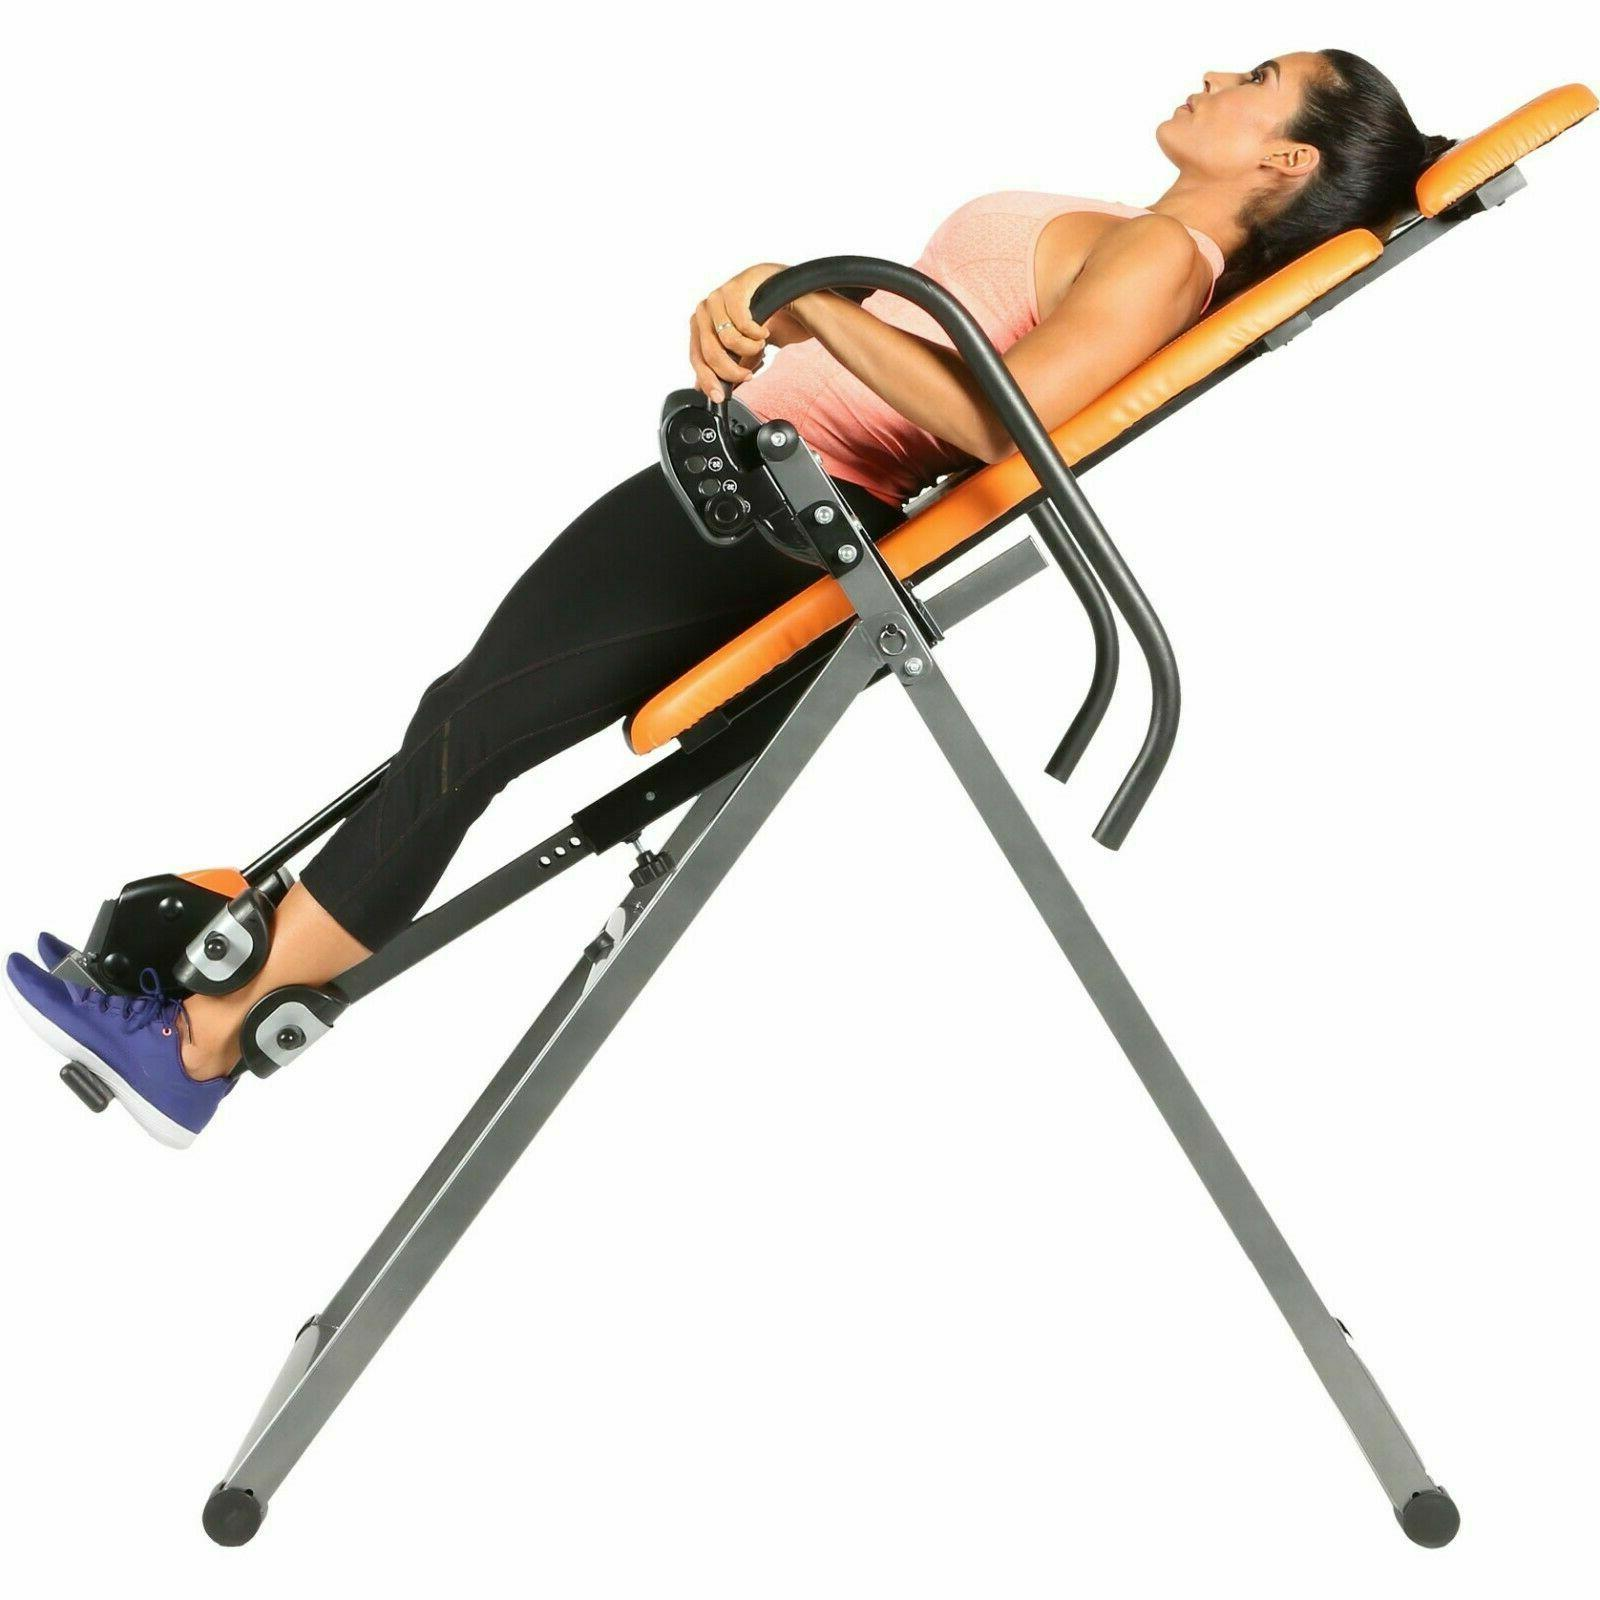 Inversion Fitness Pain Relief